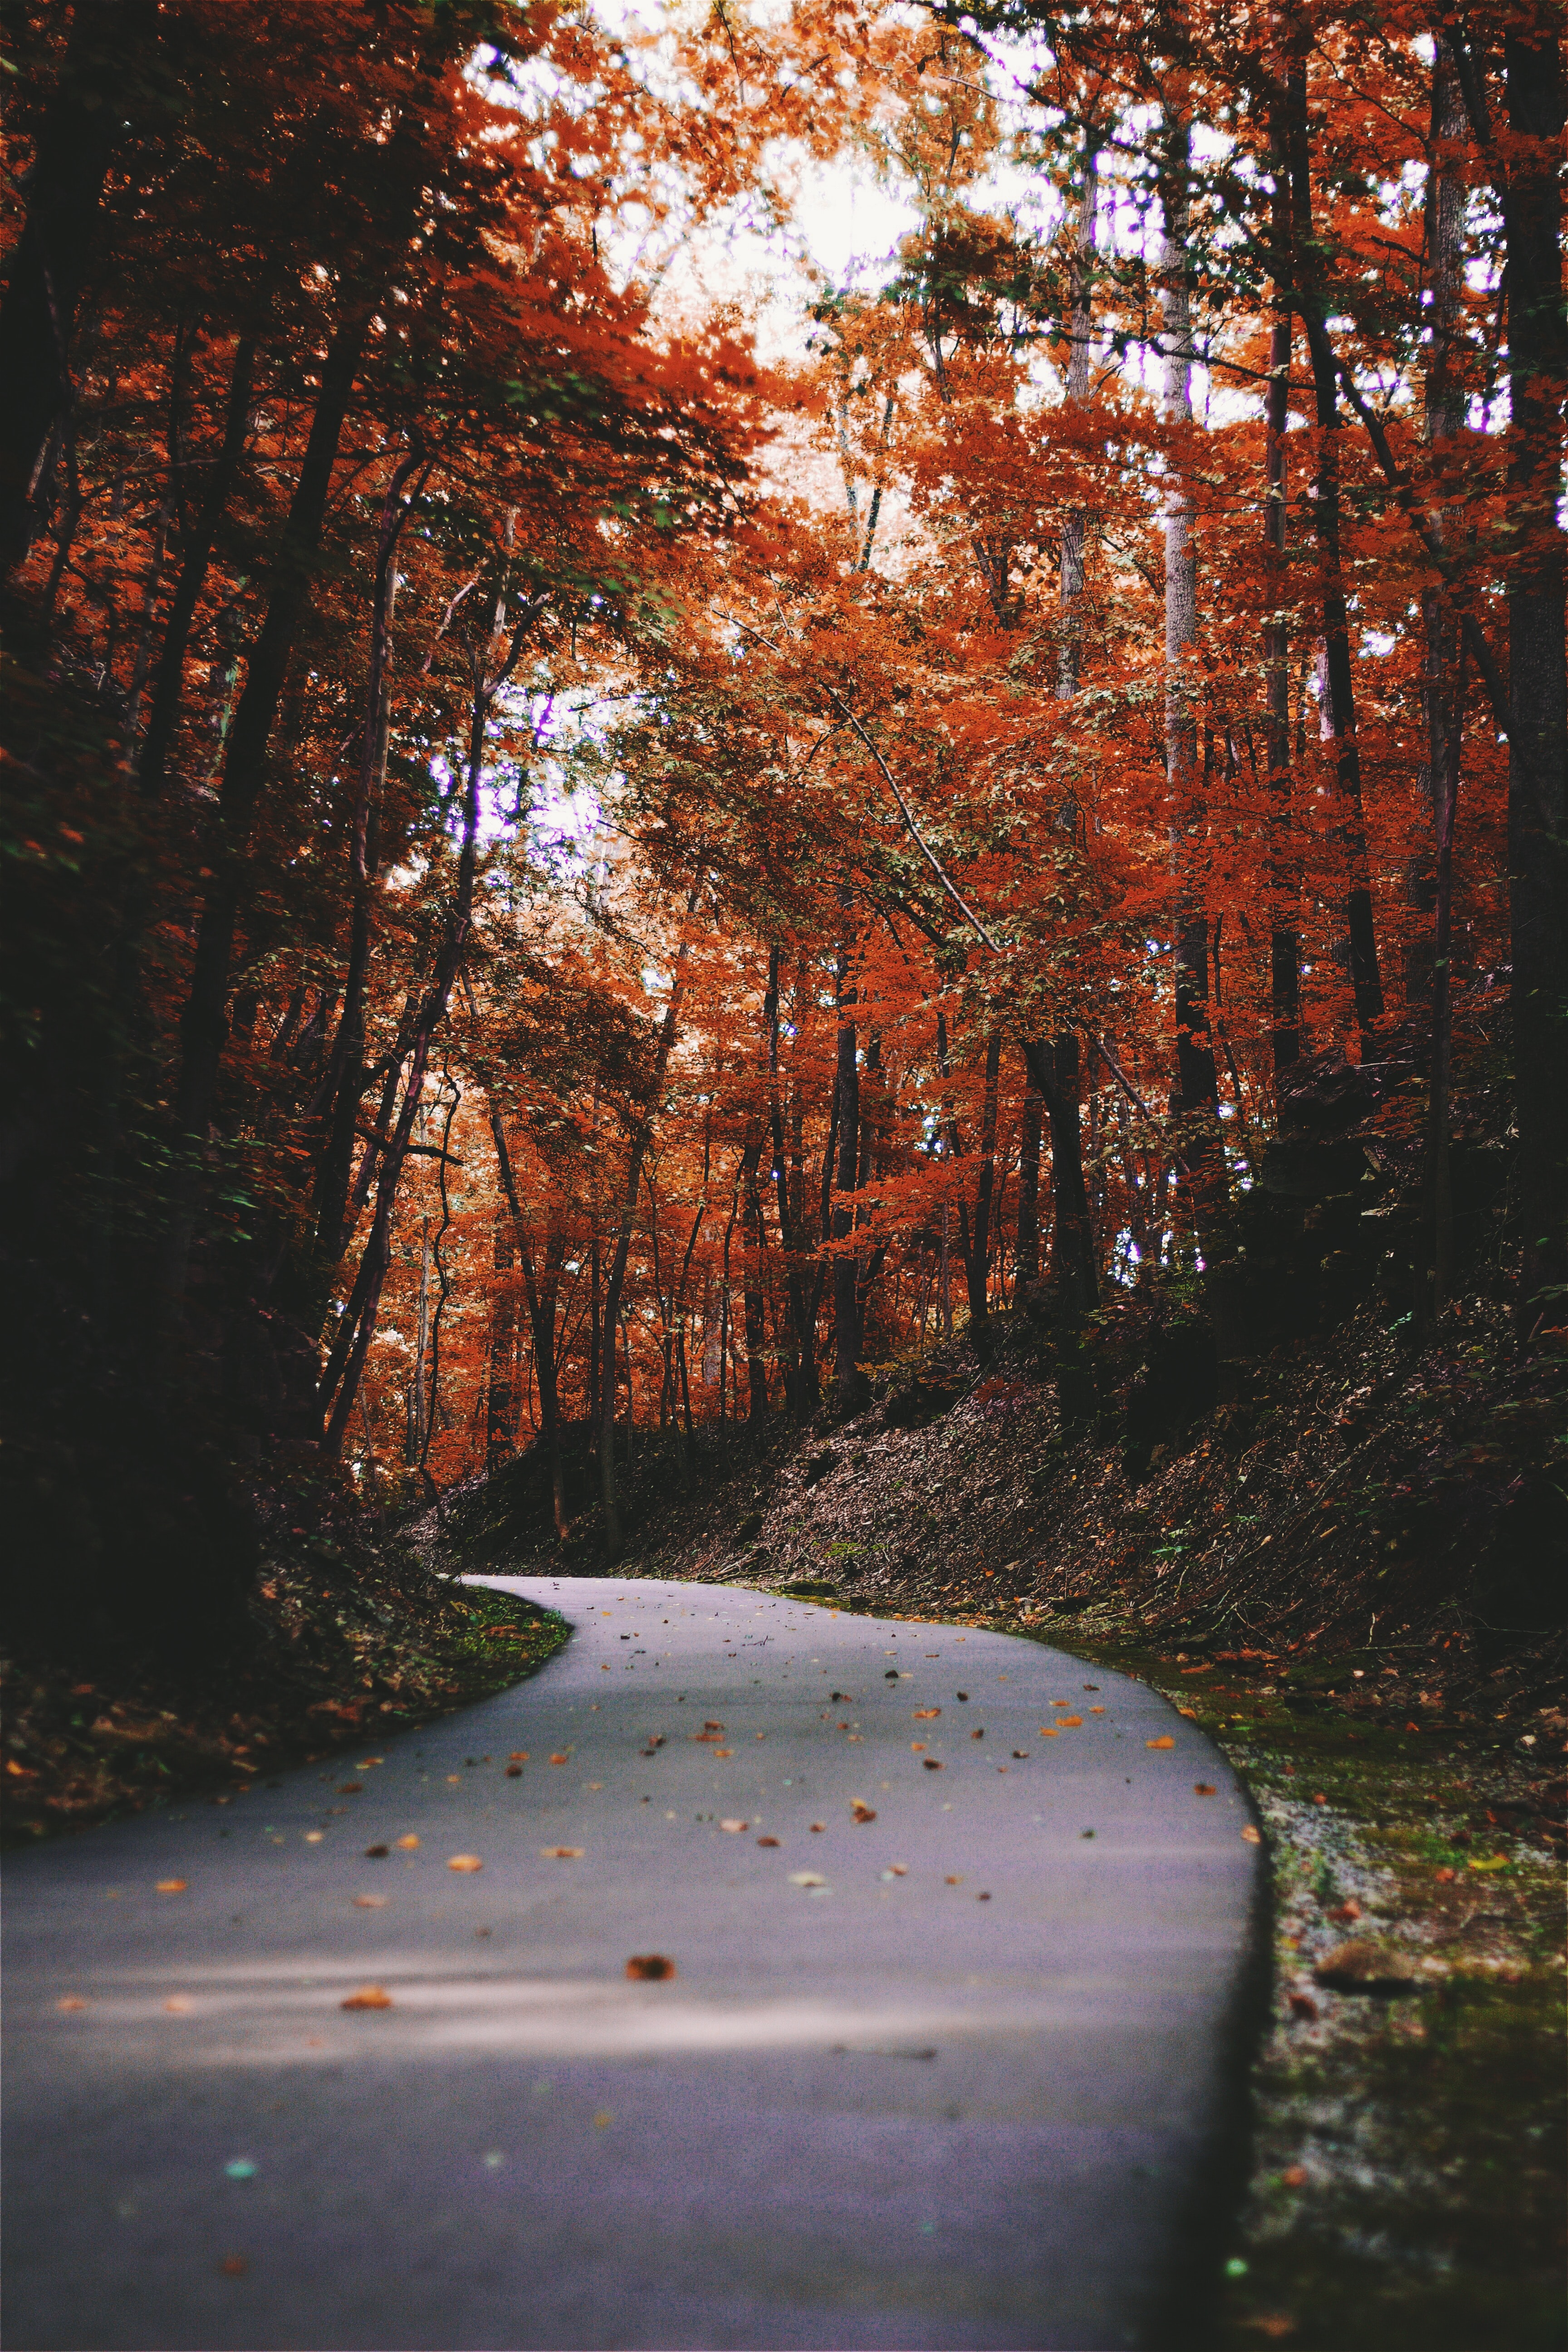 The First Night of Autumn fall stories